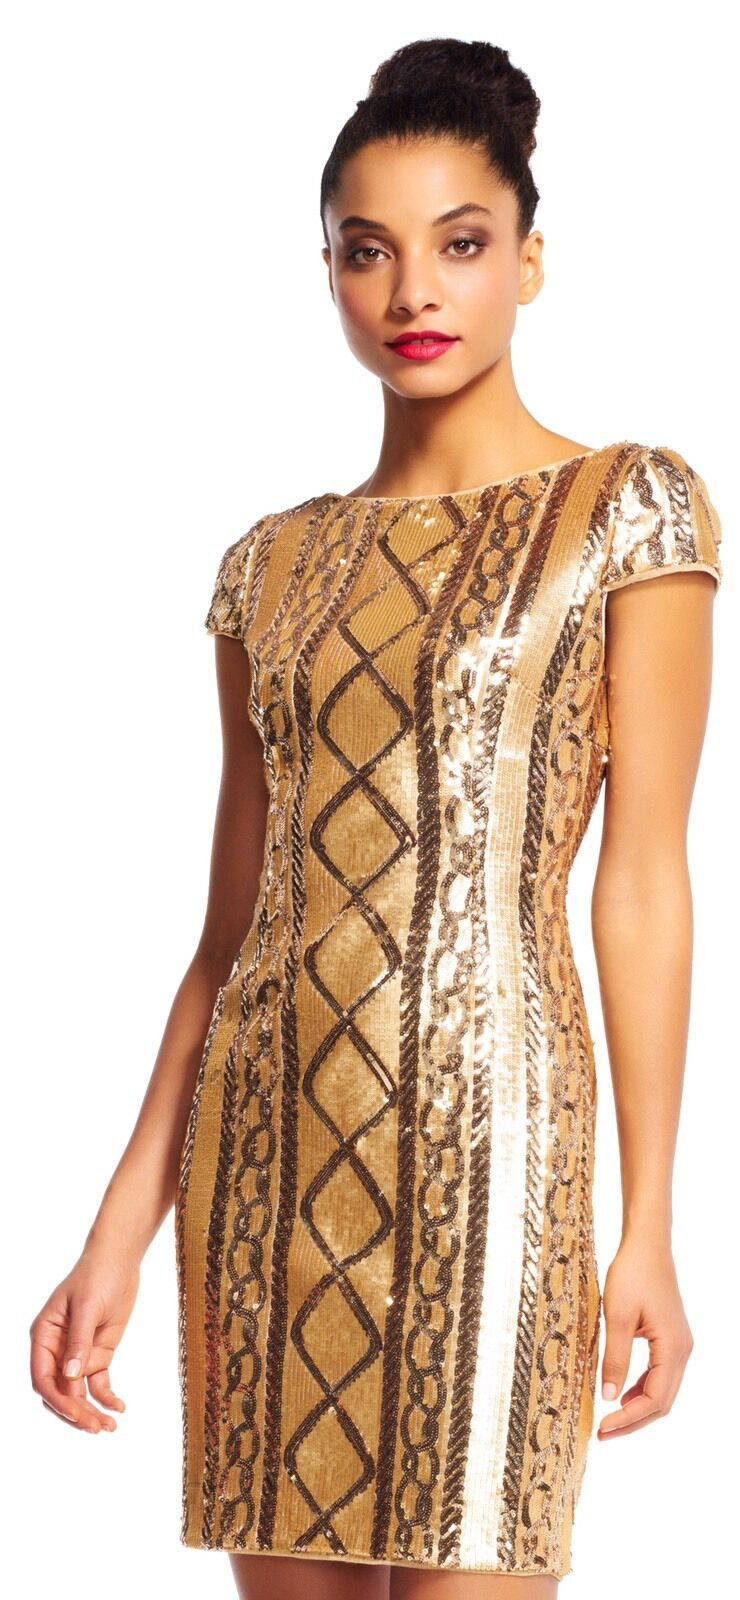 NEW Adrianna Papell 14 SEQUIN Evening Cocktail MOTHER BRIDE Spring formal Nwt